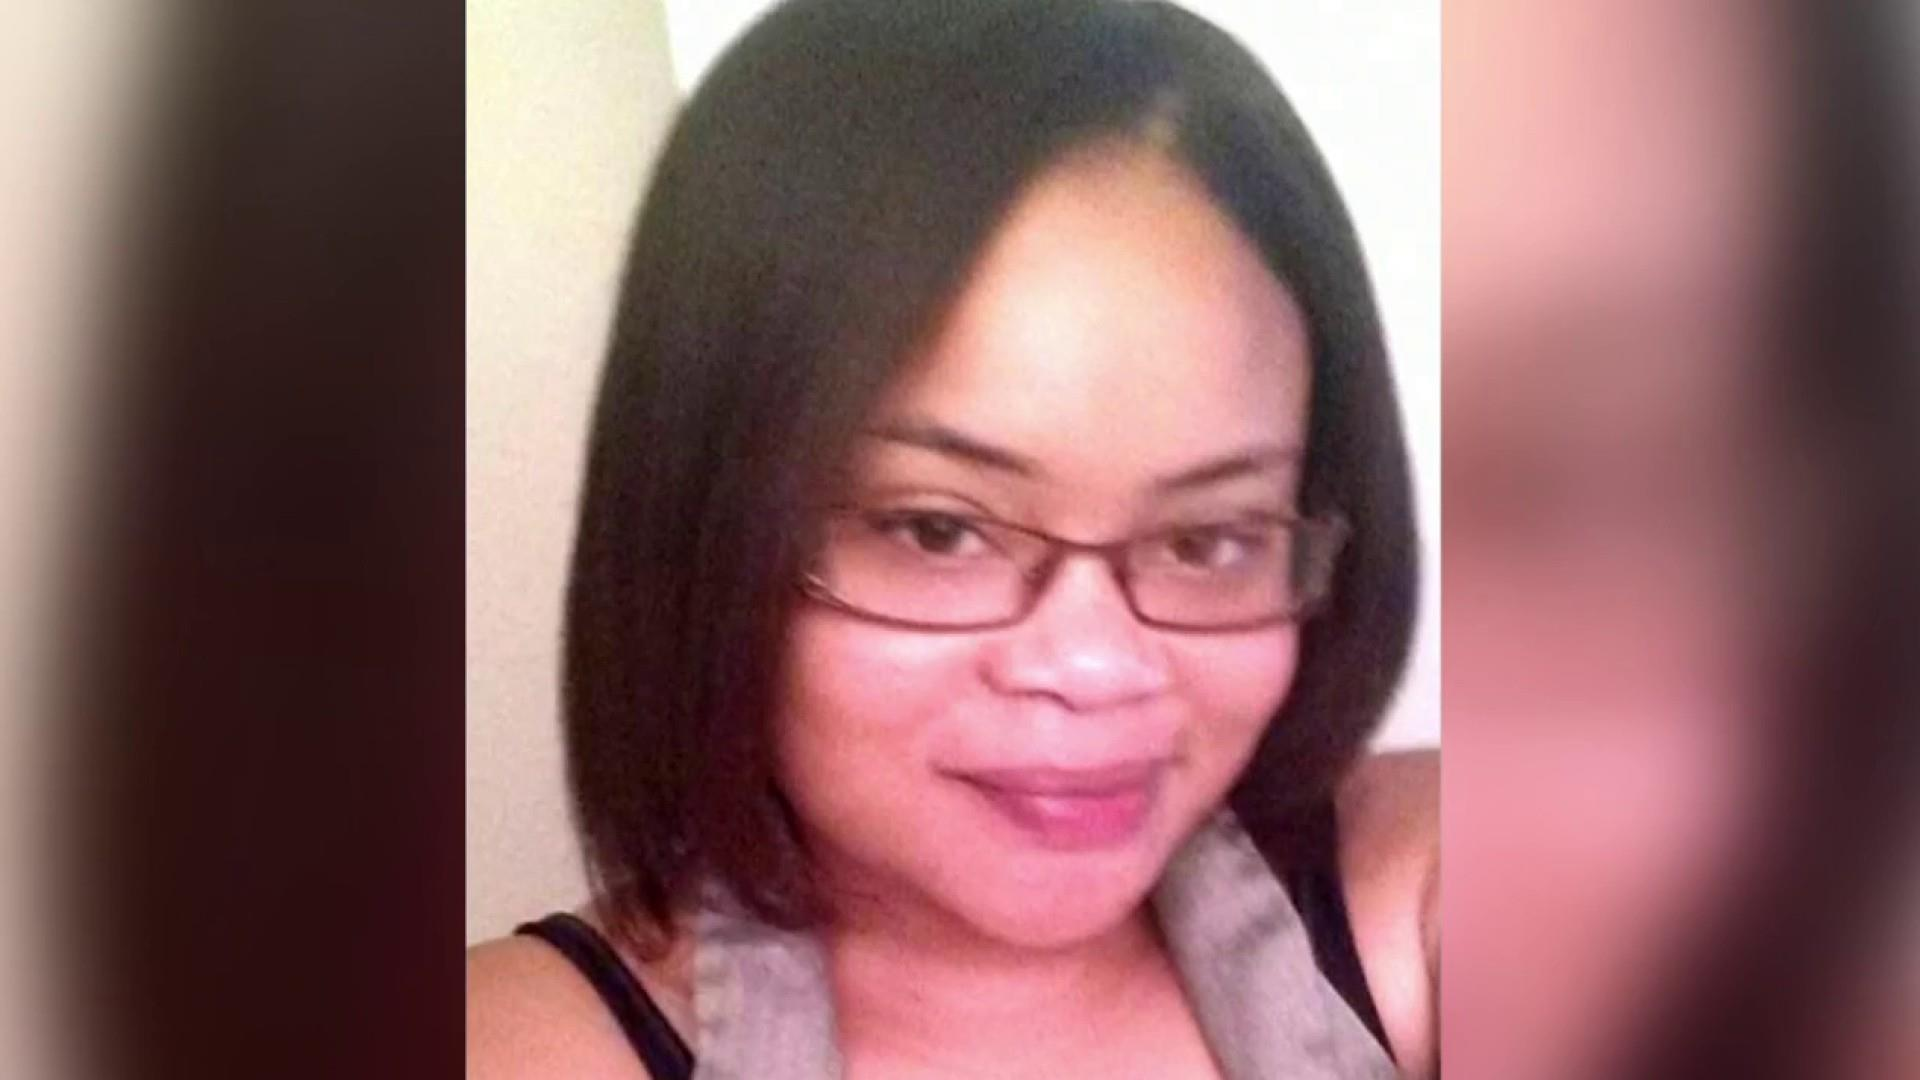 Officer who killed Atatiana Jefferson in her home charged with murder